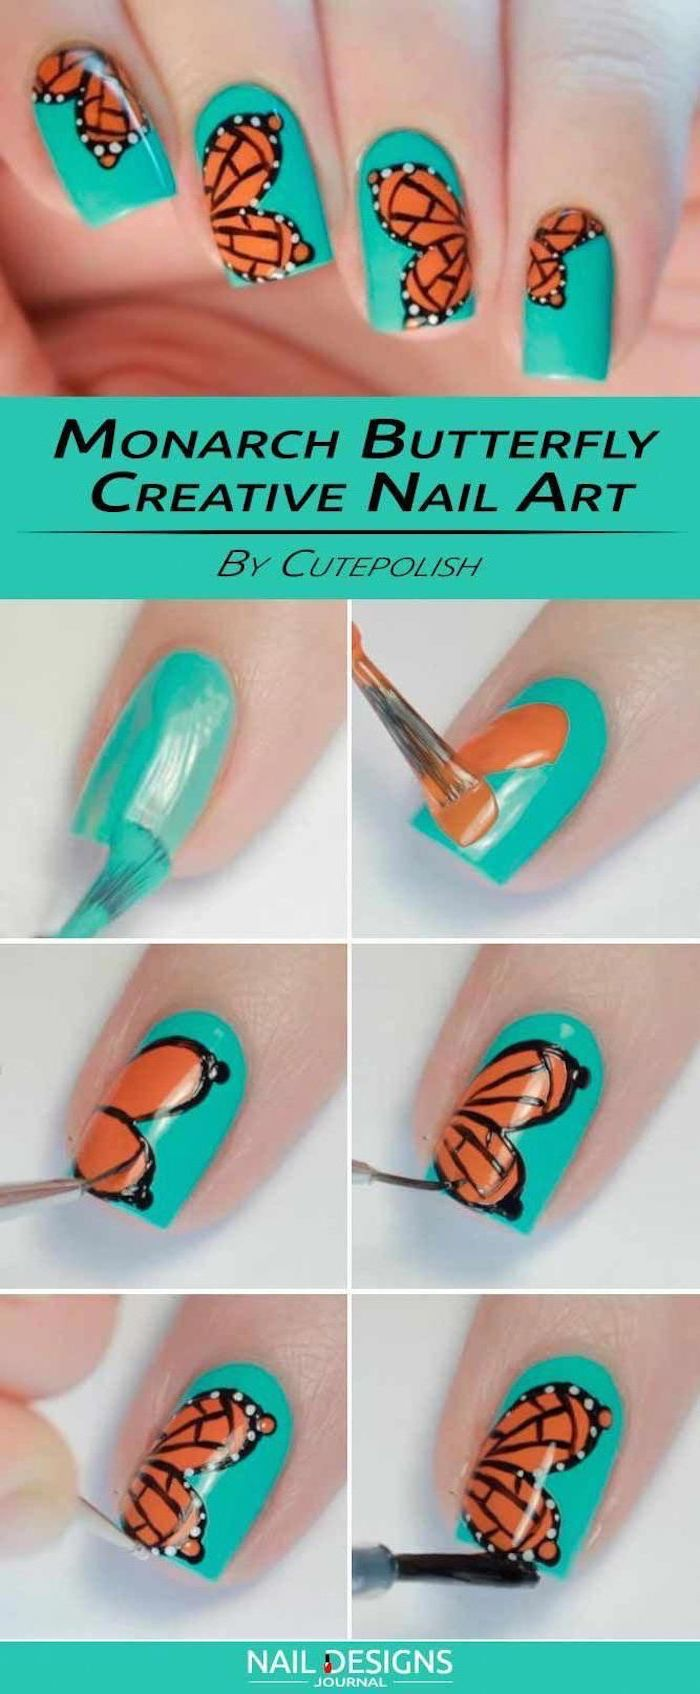 monarch butterfly, step by step diy tutorial, beach nail designs, turquoise nail polish